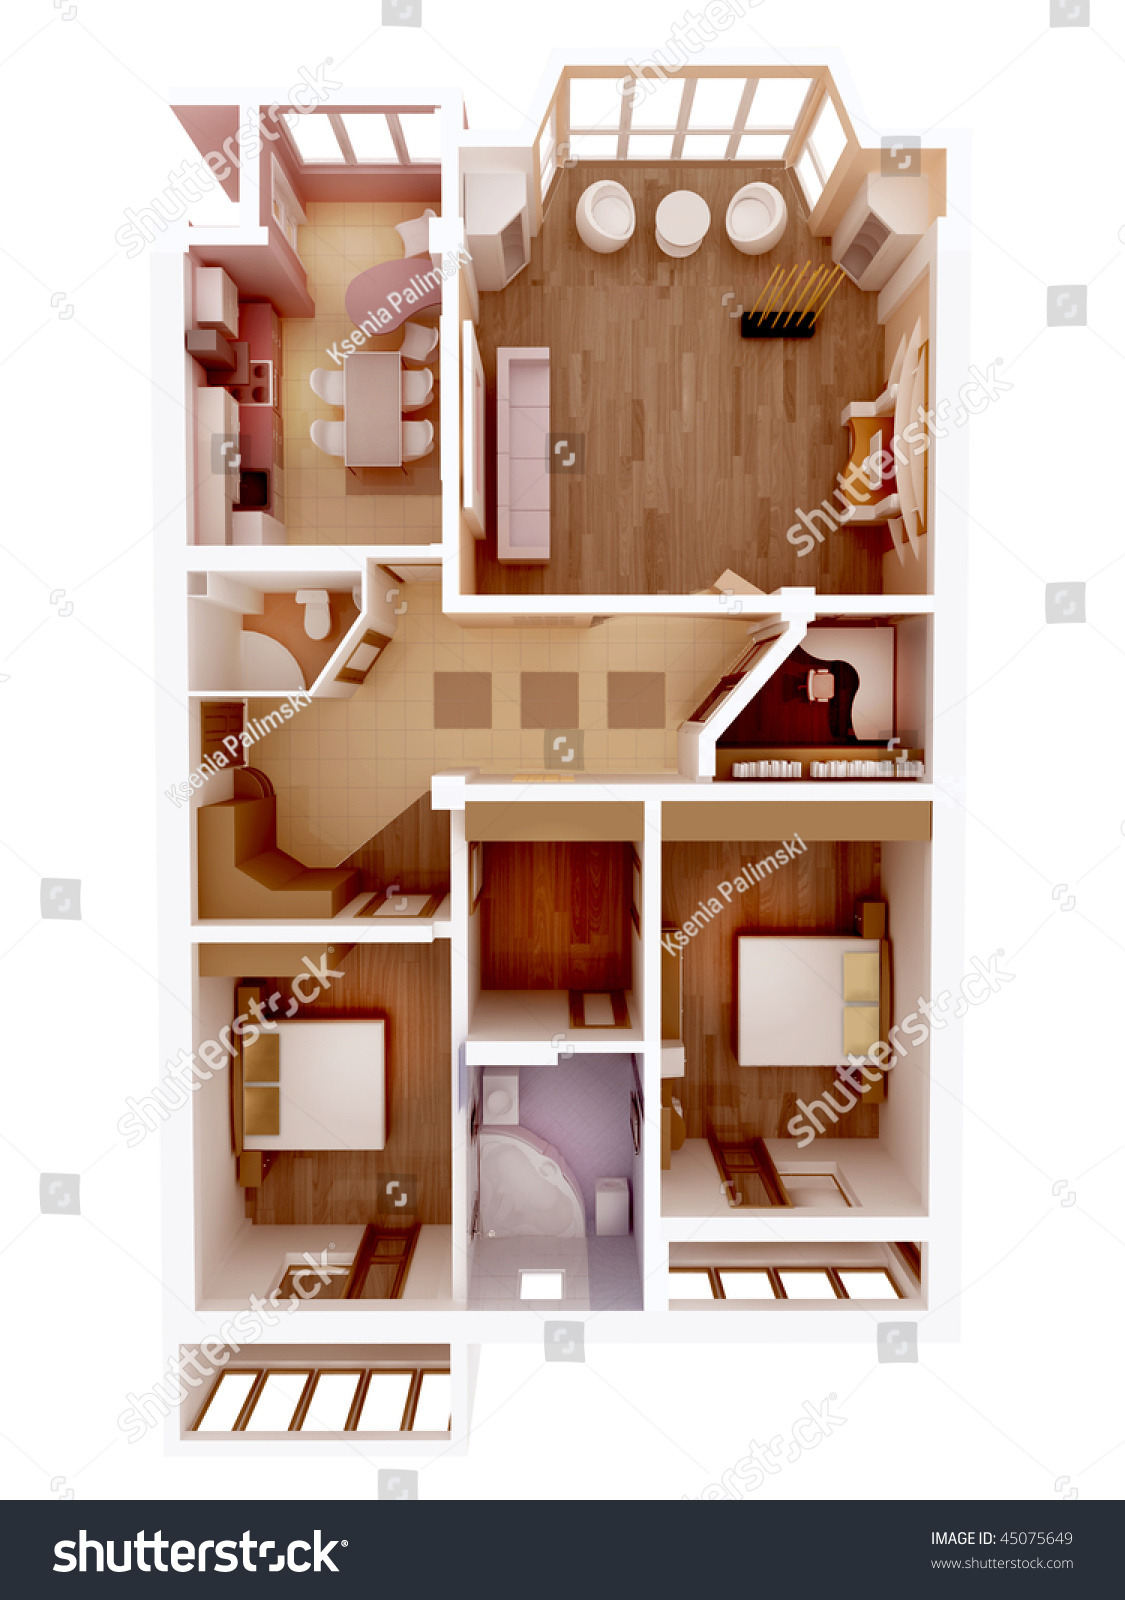 plan view apartment clear 3d interior